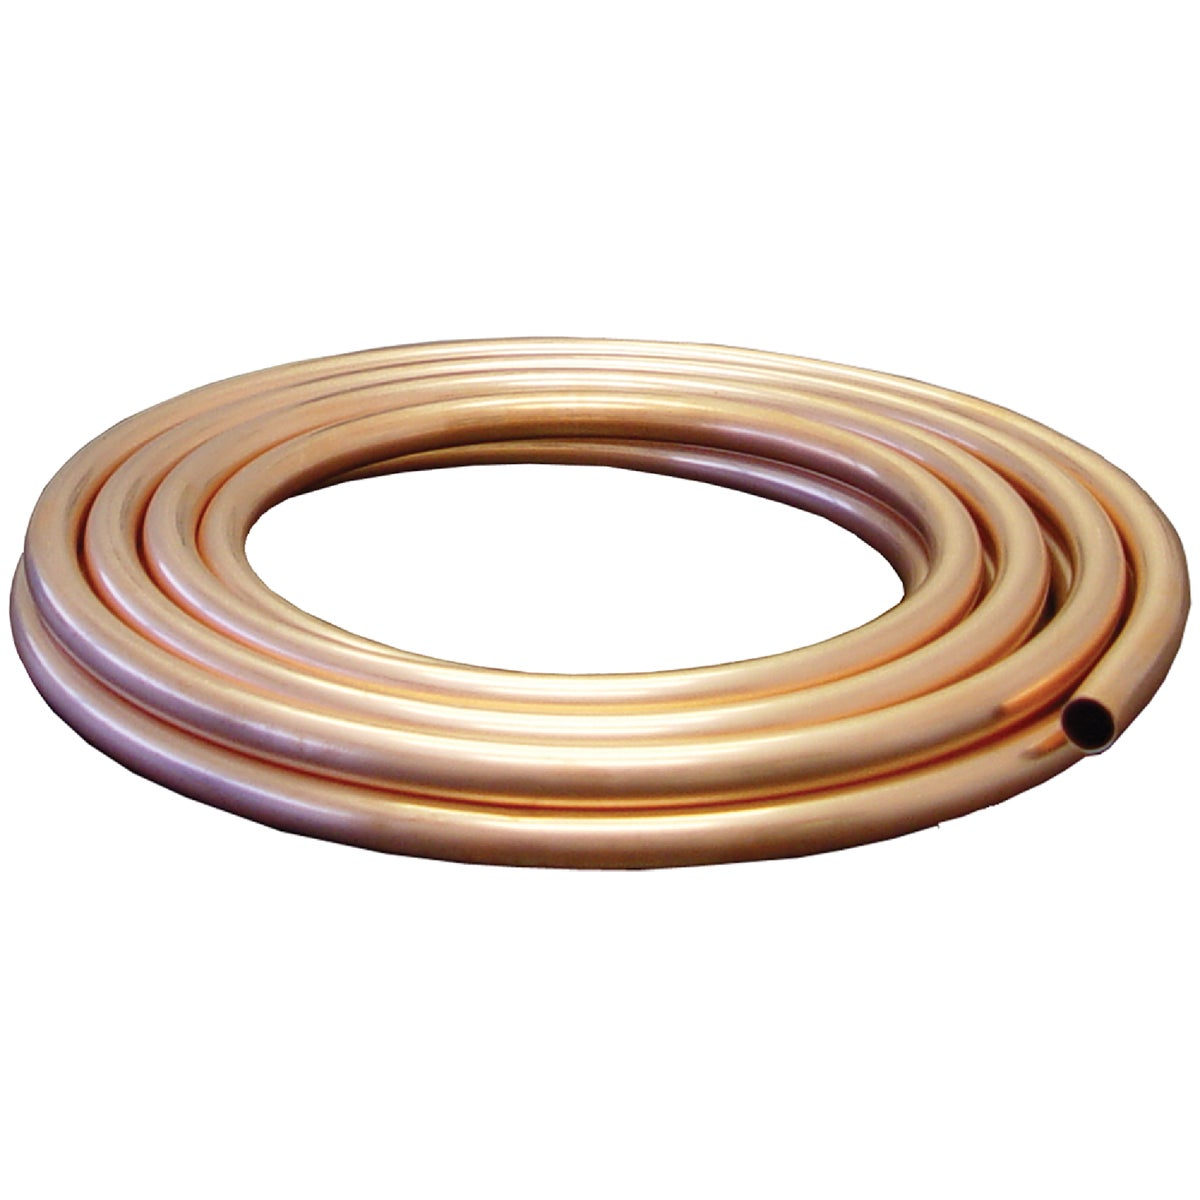 "1/4""ODX10'UG COPPER COIL - UT04010 by Mueller B K"